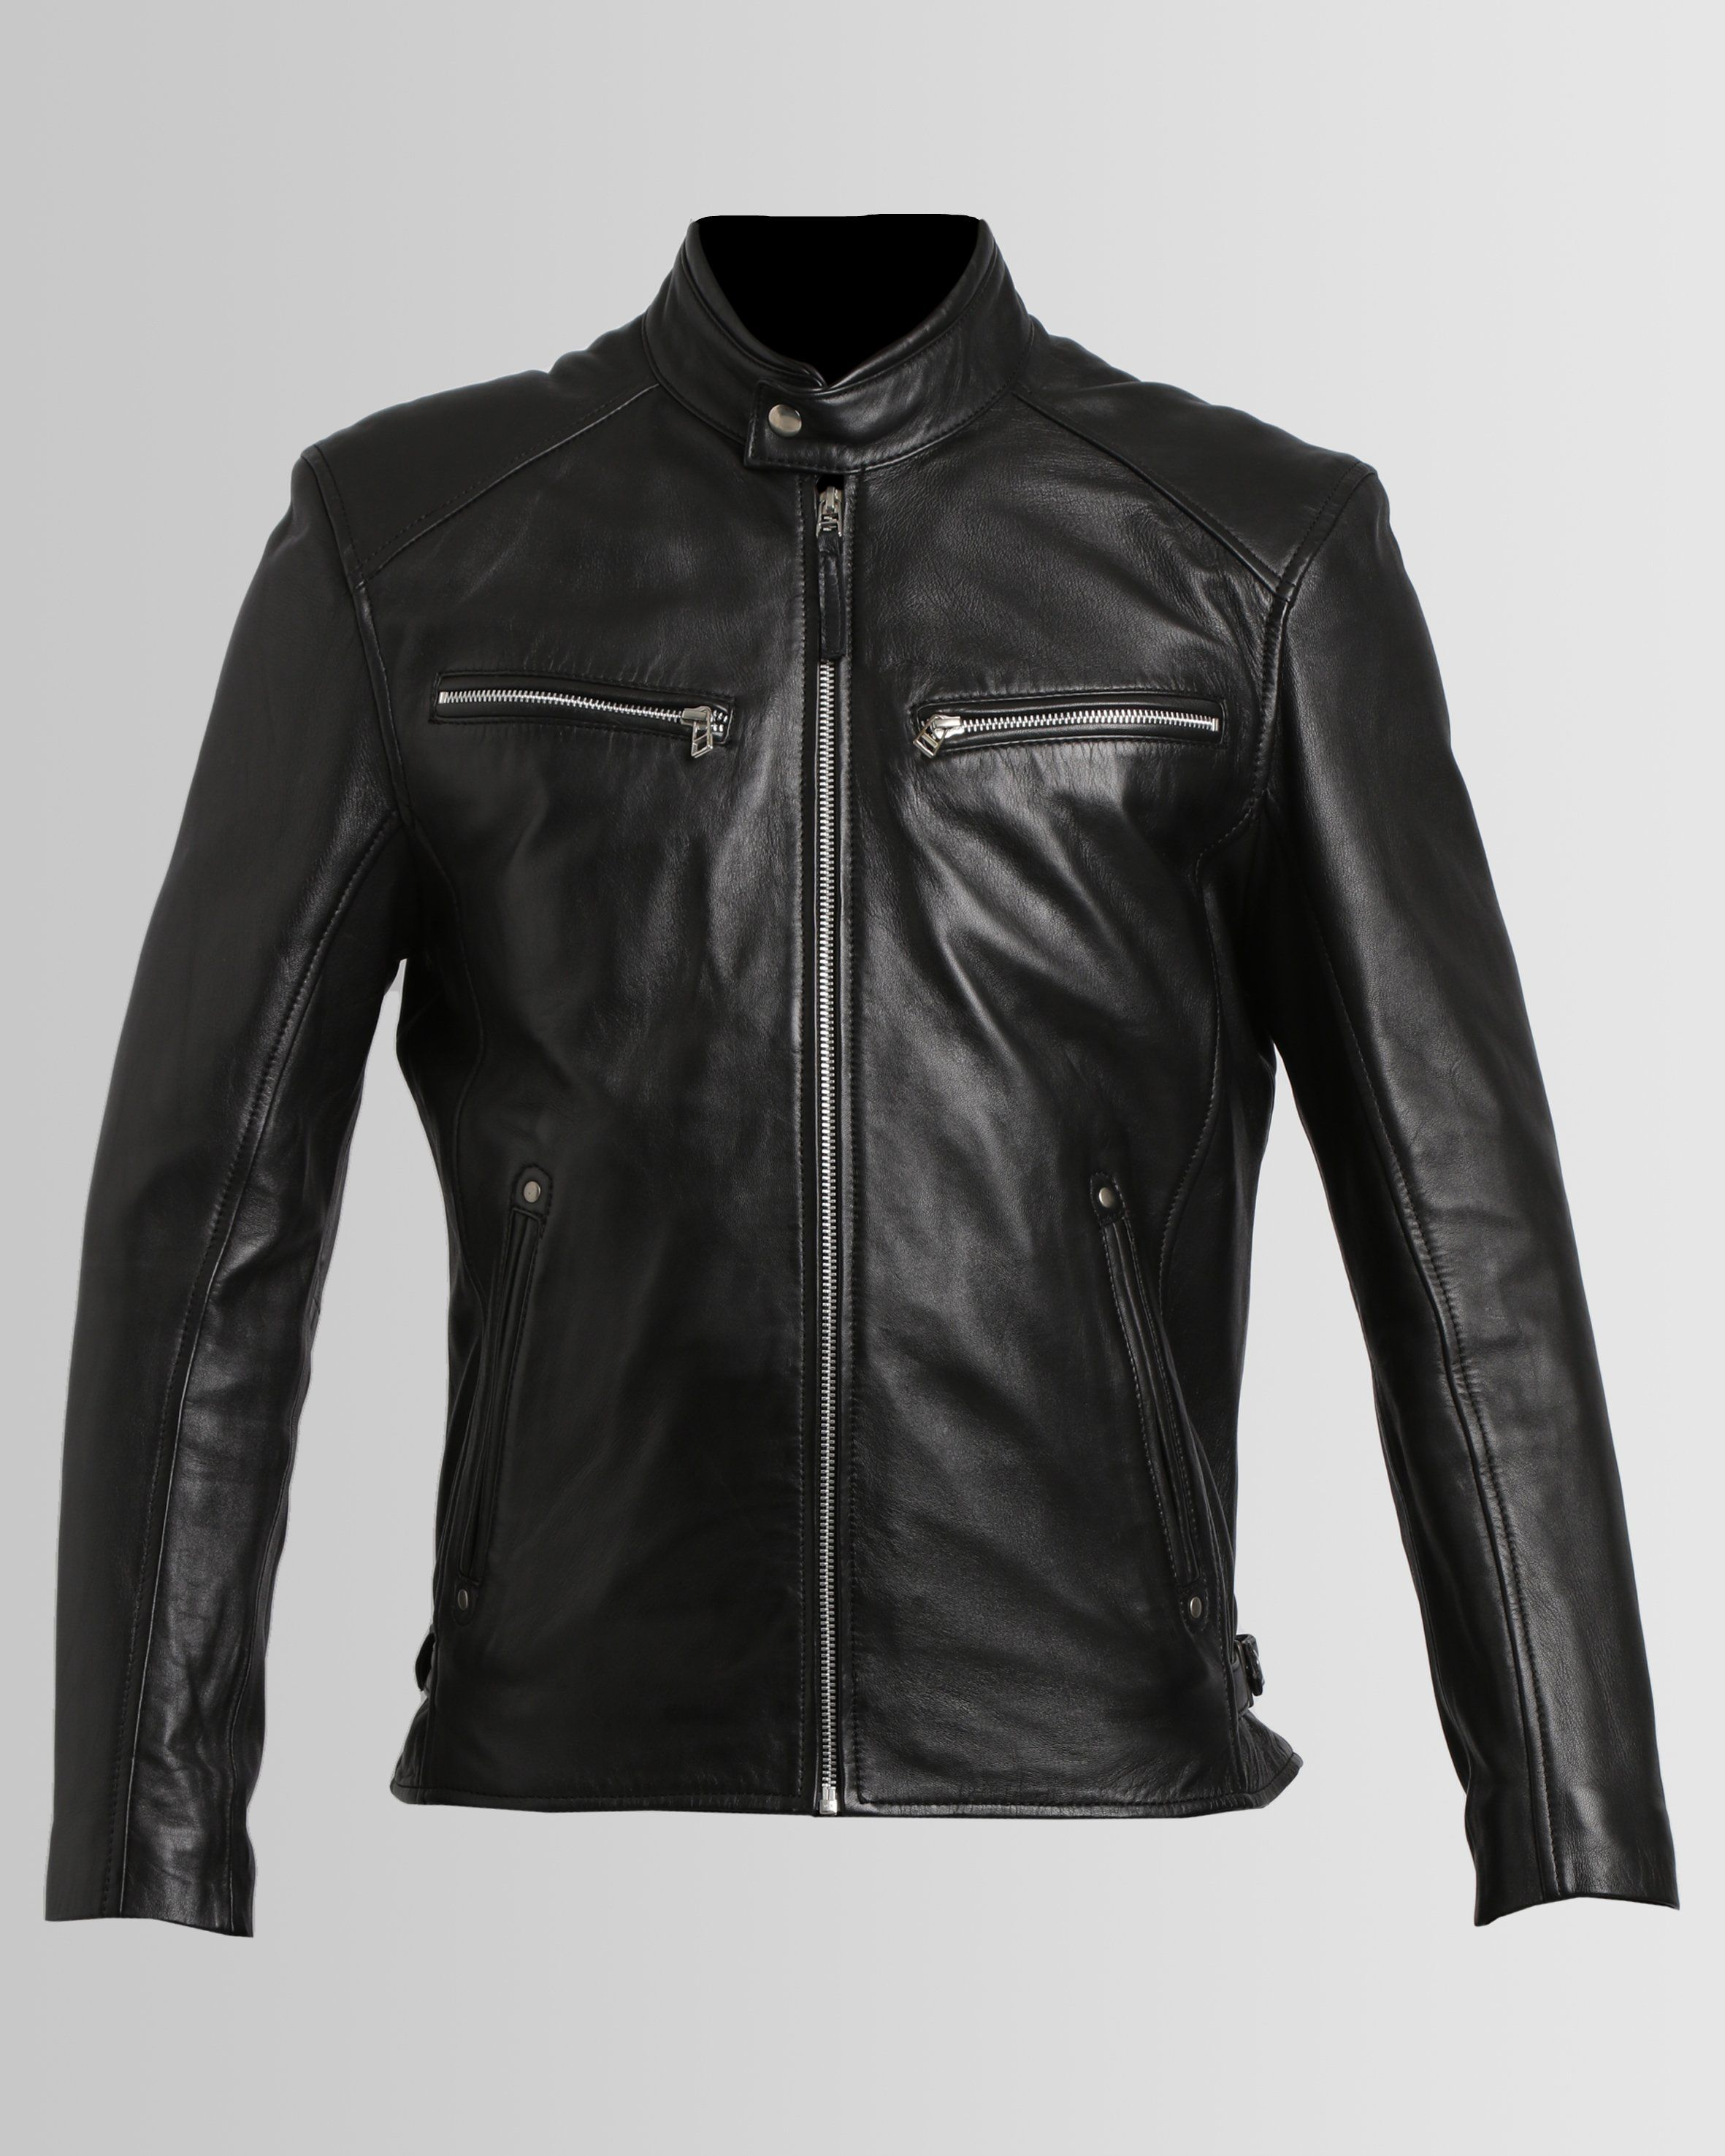 Leatherclue is a leading online Shopping Site store for